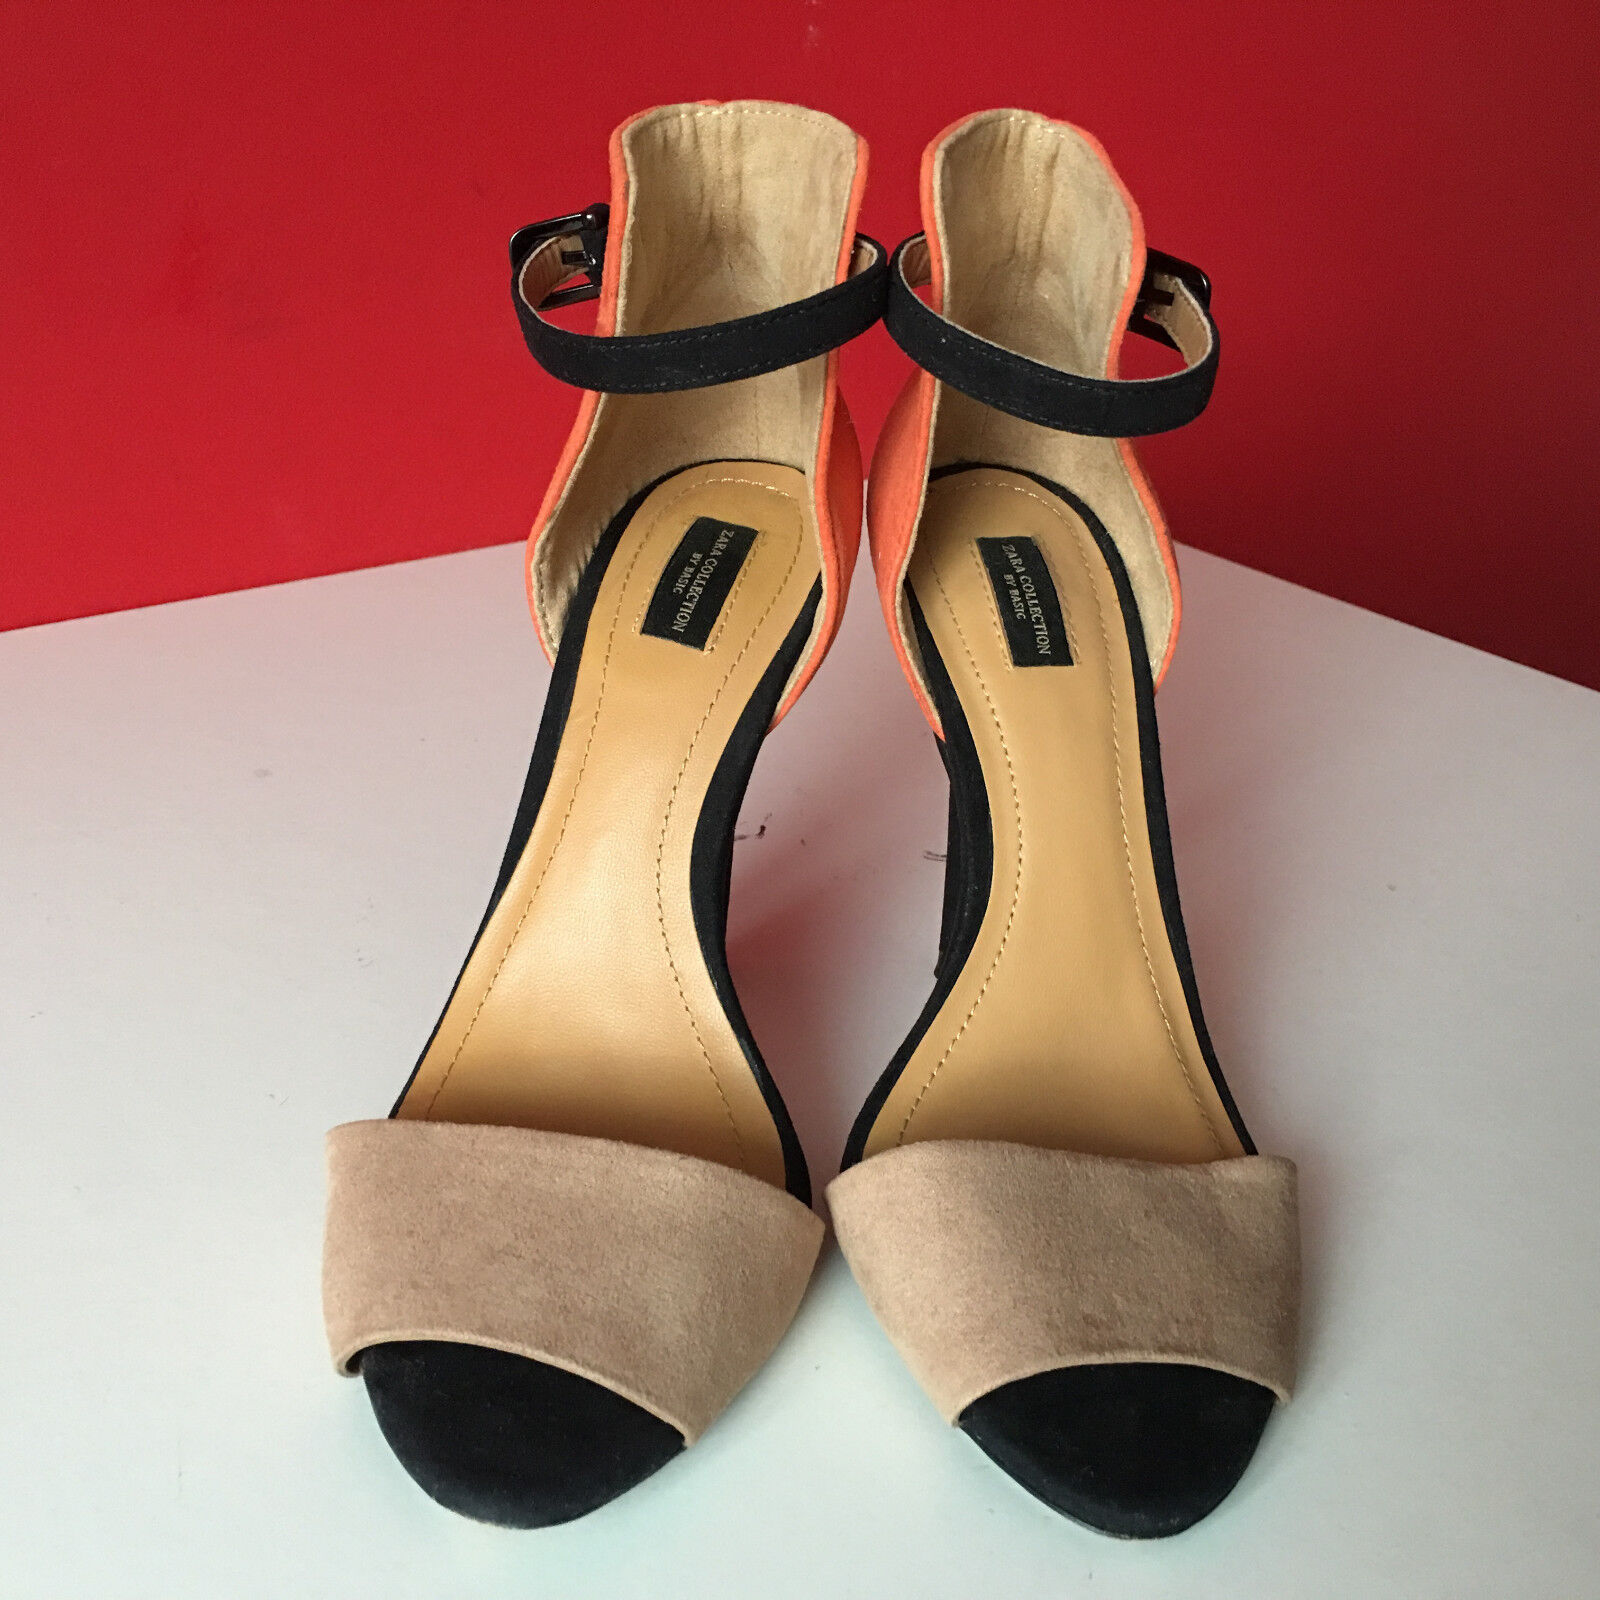 ZARA orange Nude Ankle Strap Heels Strappy Strappy Strappy Barely There Sandals UK 3 EUR 36 RARE 066b21